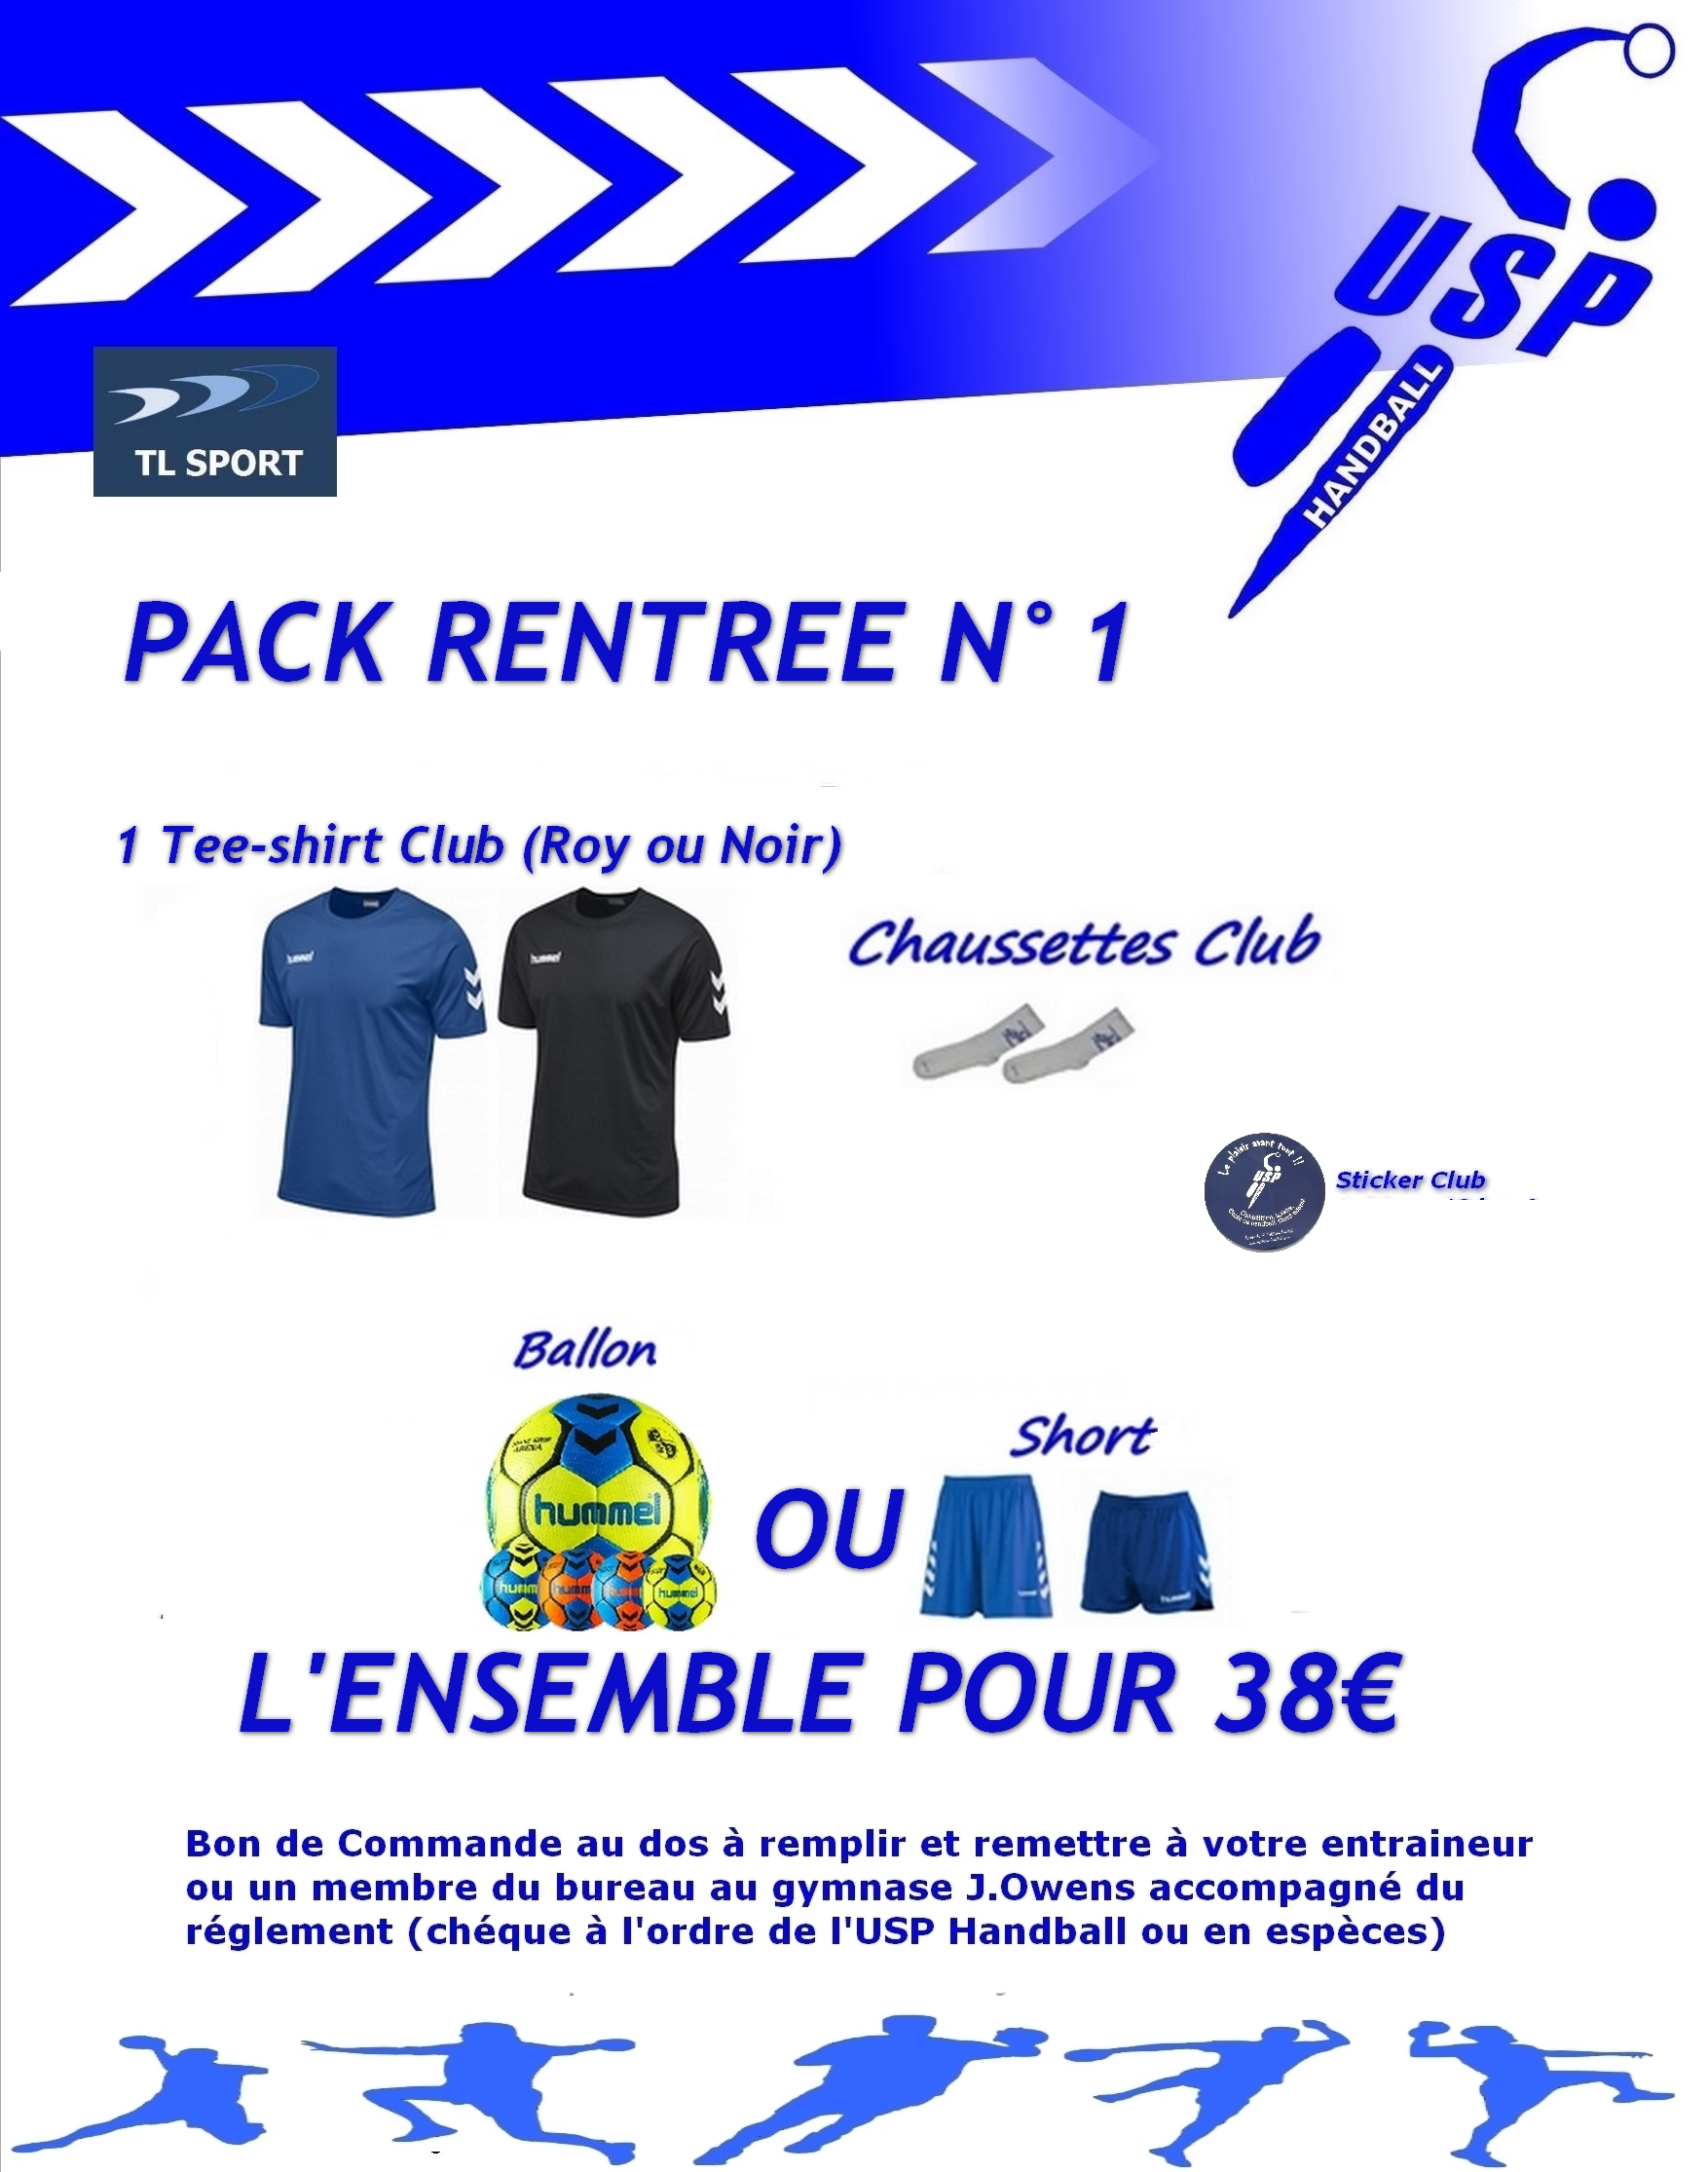 Pack rentree 1 2018